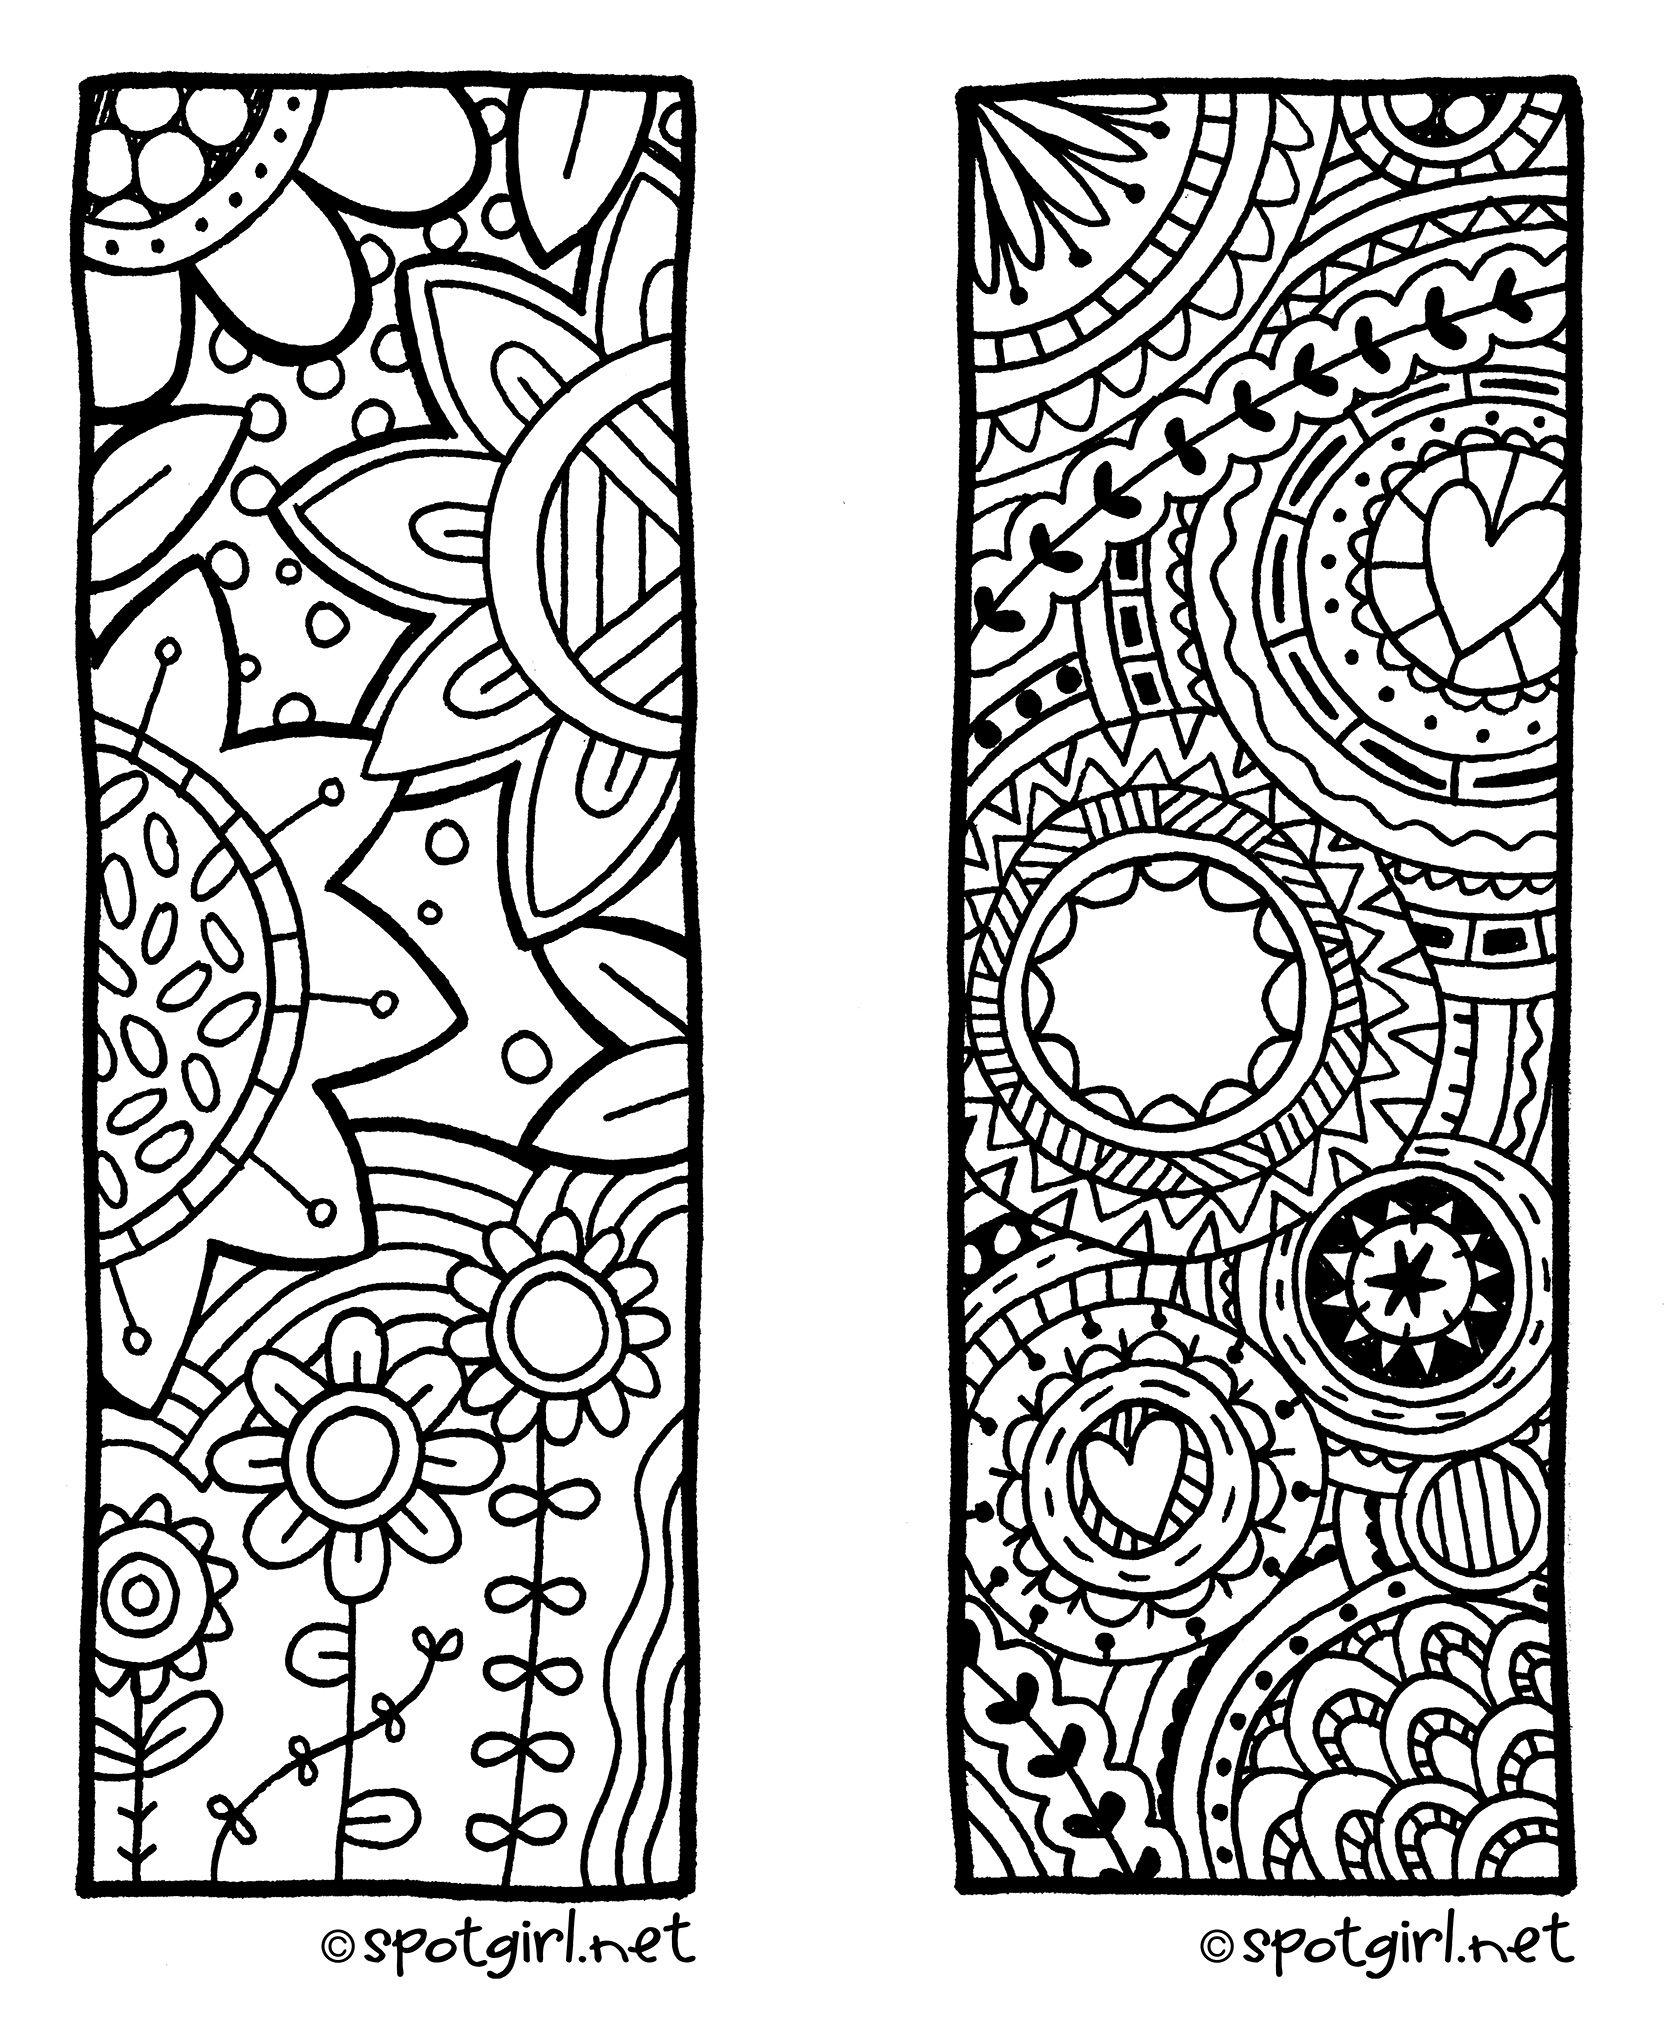 Zentangle Bookmark Printable From Spotgirl-Hotcakes.blogspot - Free Printable Bookmarks To Color